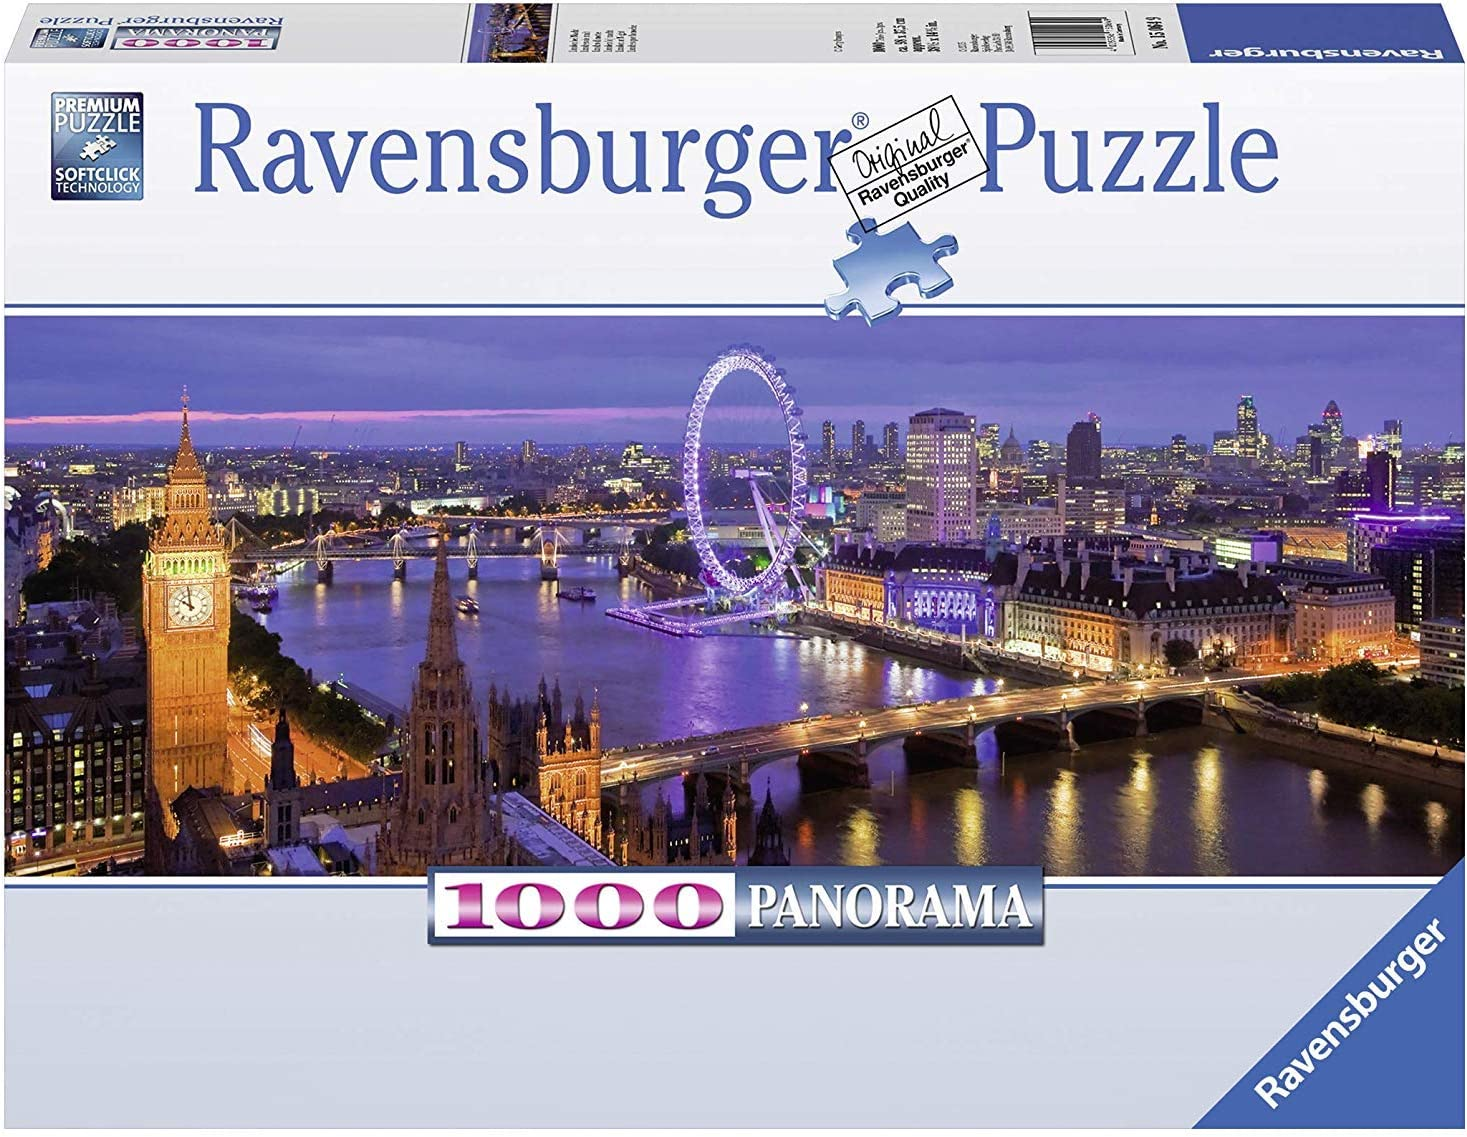 London Nighttime Panorama by the Thames 1000-piece jigsaw puzzle